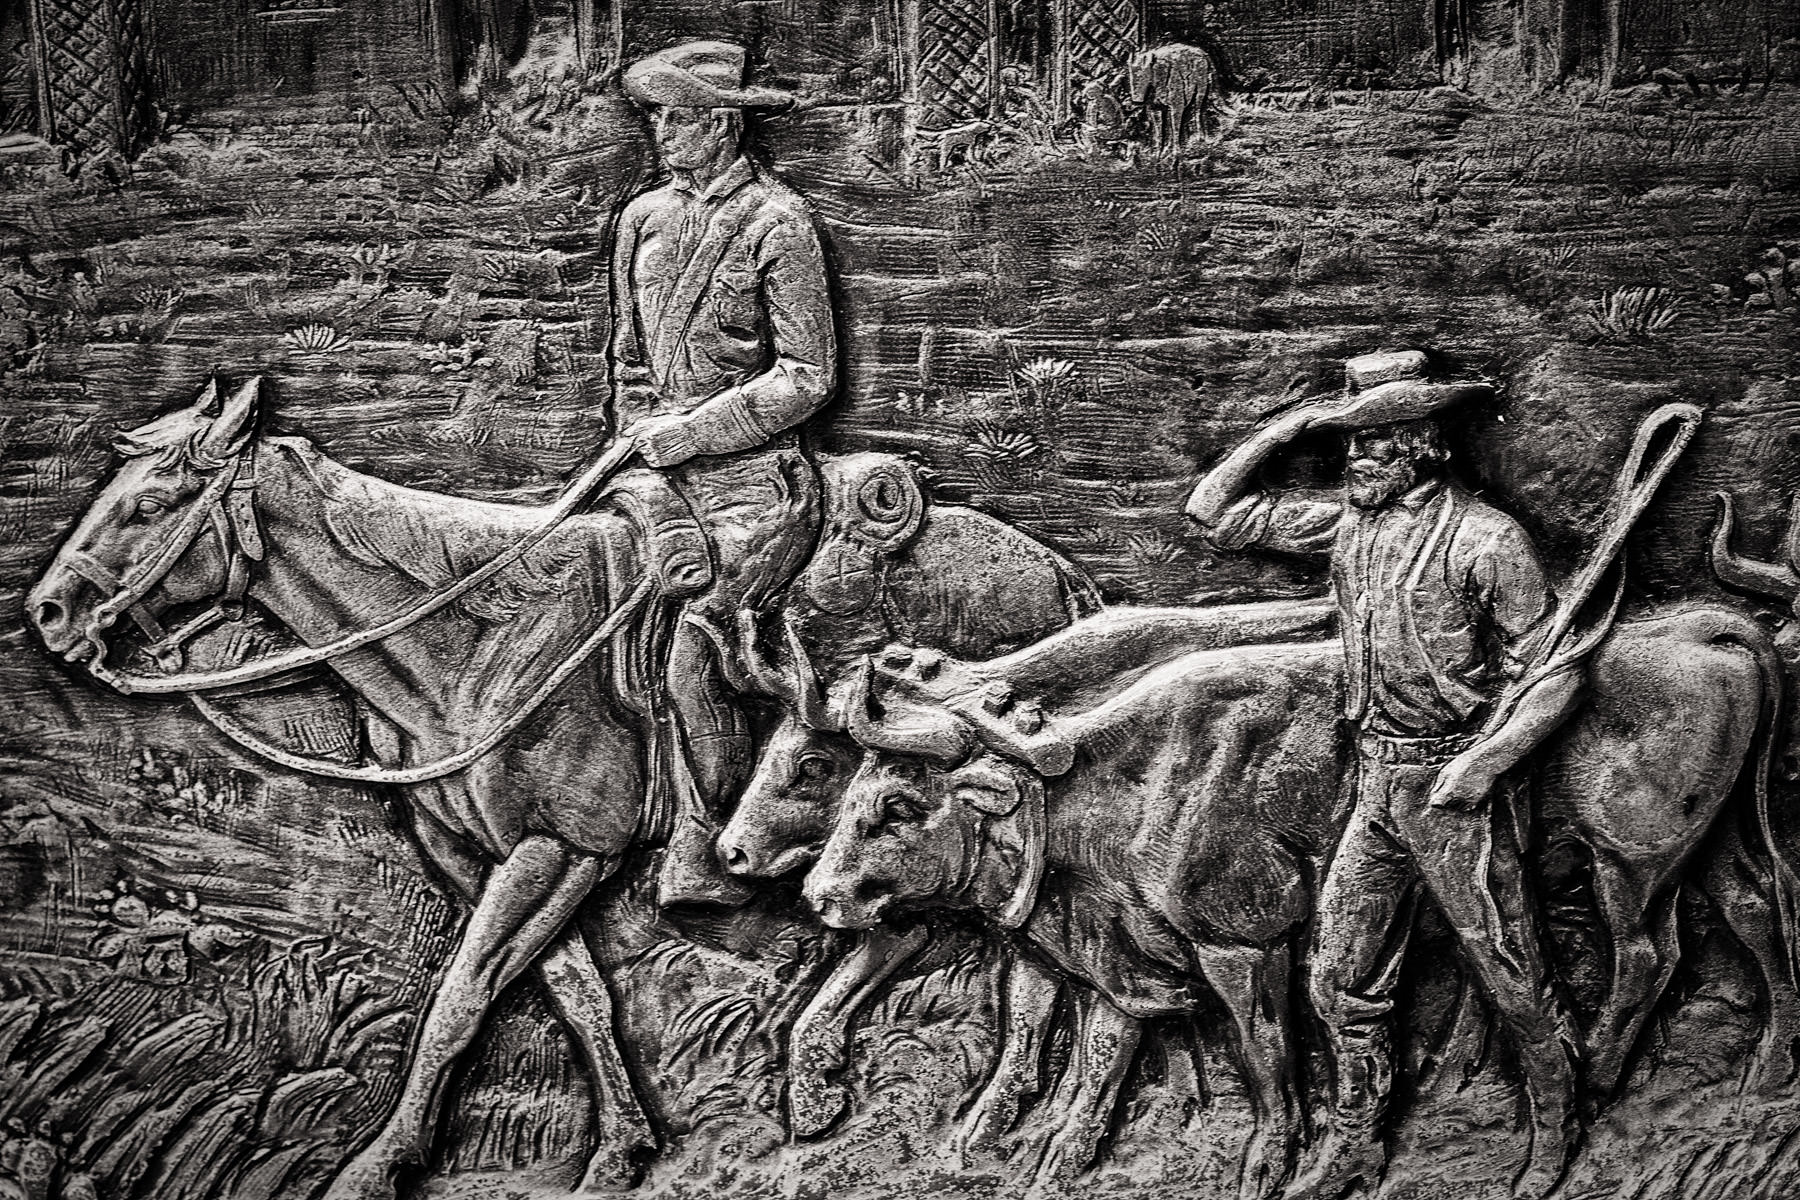 Detail of a plaque outside of Heritage Park, Fort Worth, Texas.